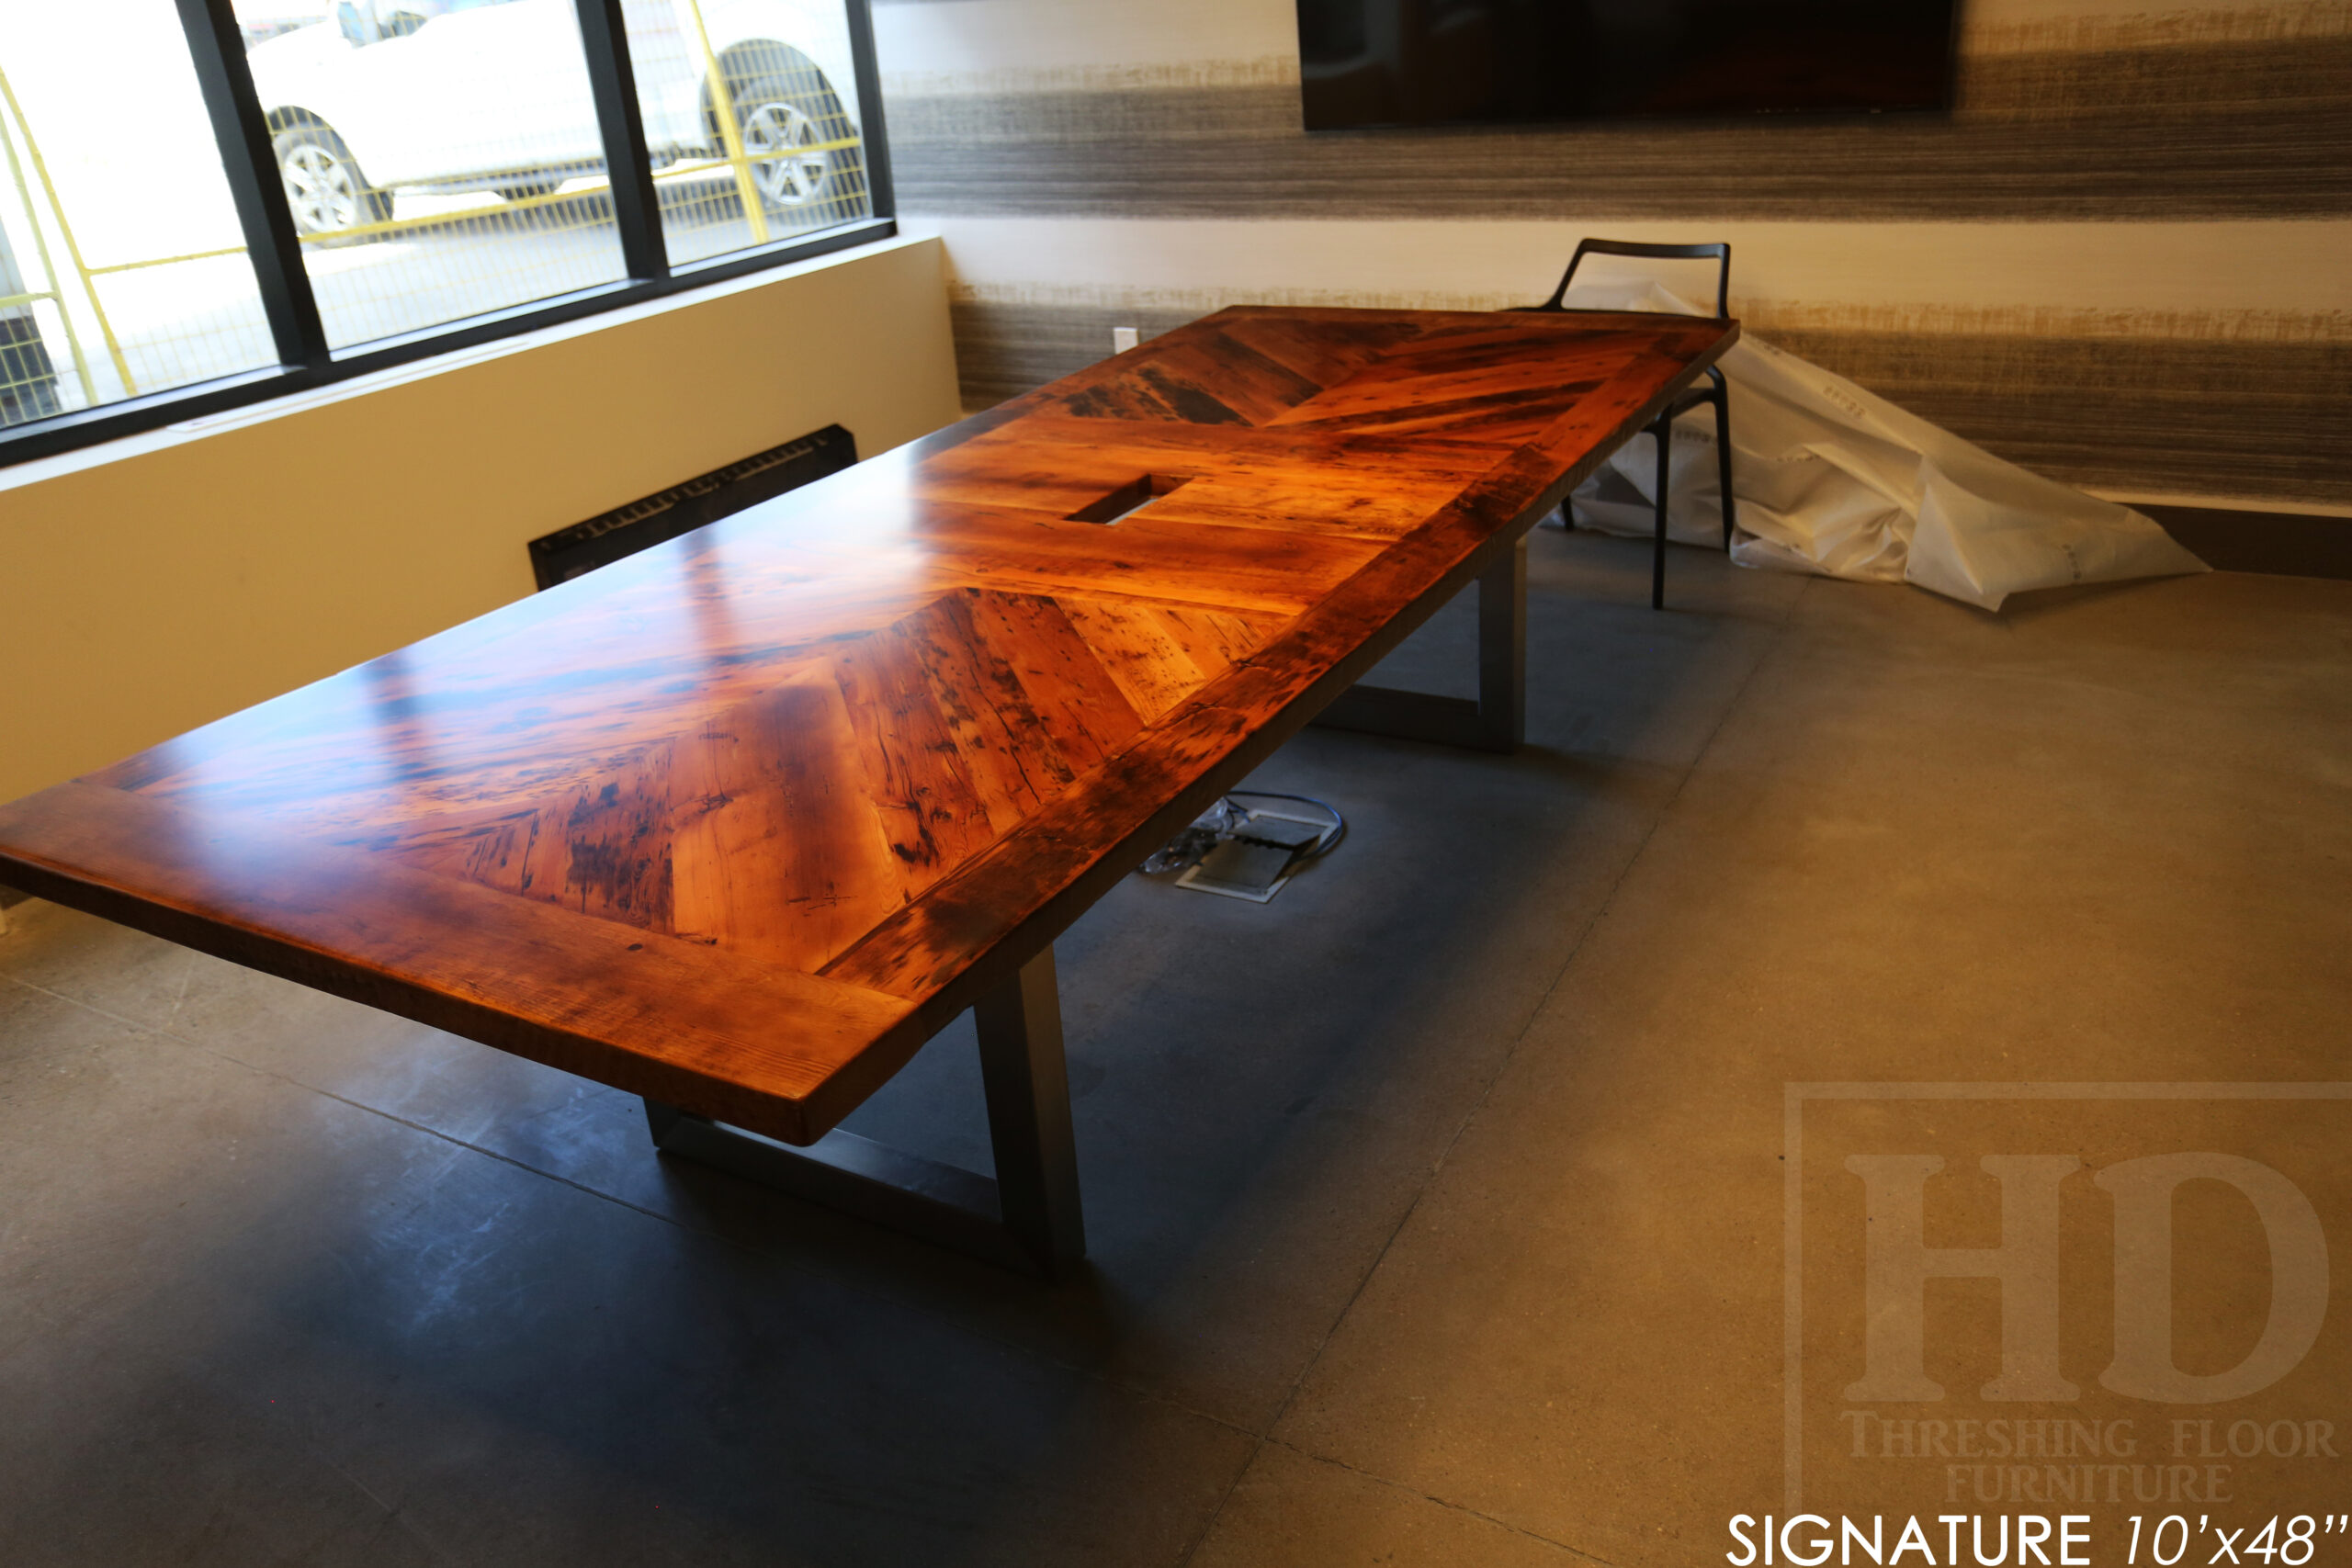 """10' Reclaimed wood boardroom table made for a Maple, ON company - 48"""" wide - Hemlock Threshing Floor Construction - Original edges & distressing maintained - Customized joinery - Premium epoxy + satin polyurethane finish - Stainless Steel Base - www.table.ca"""